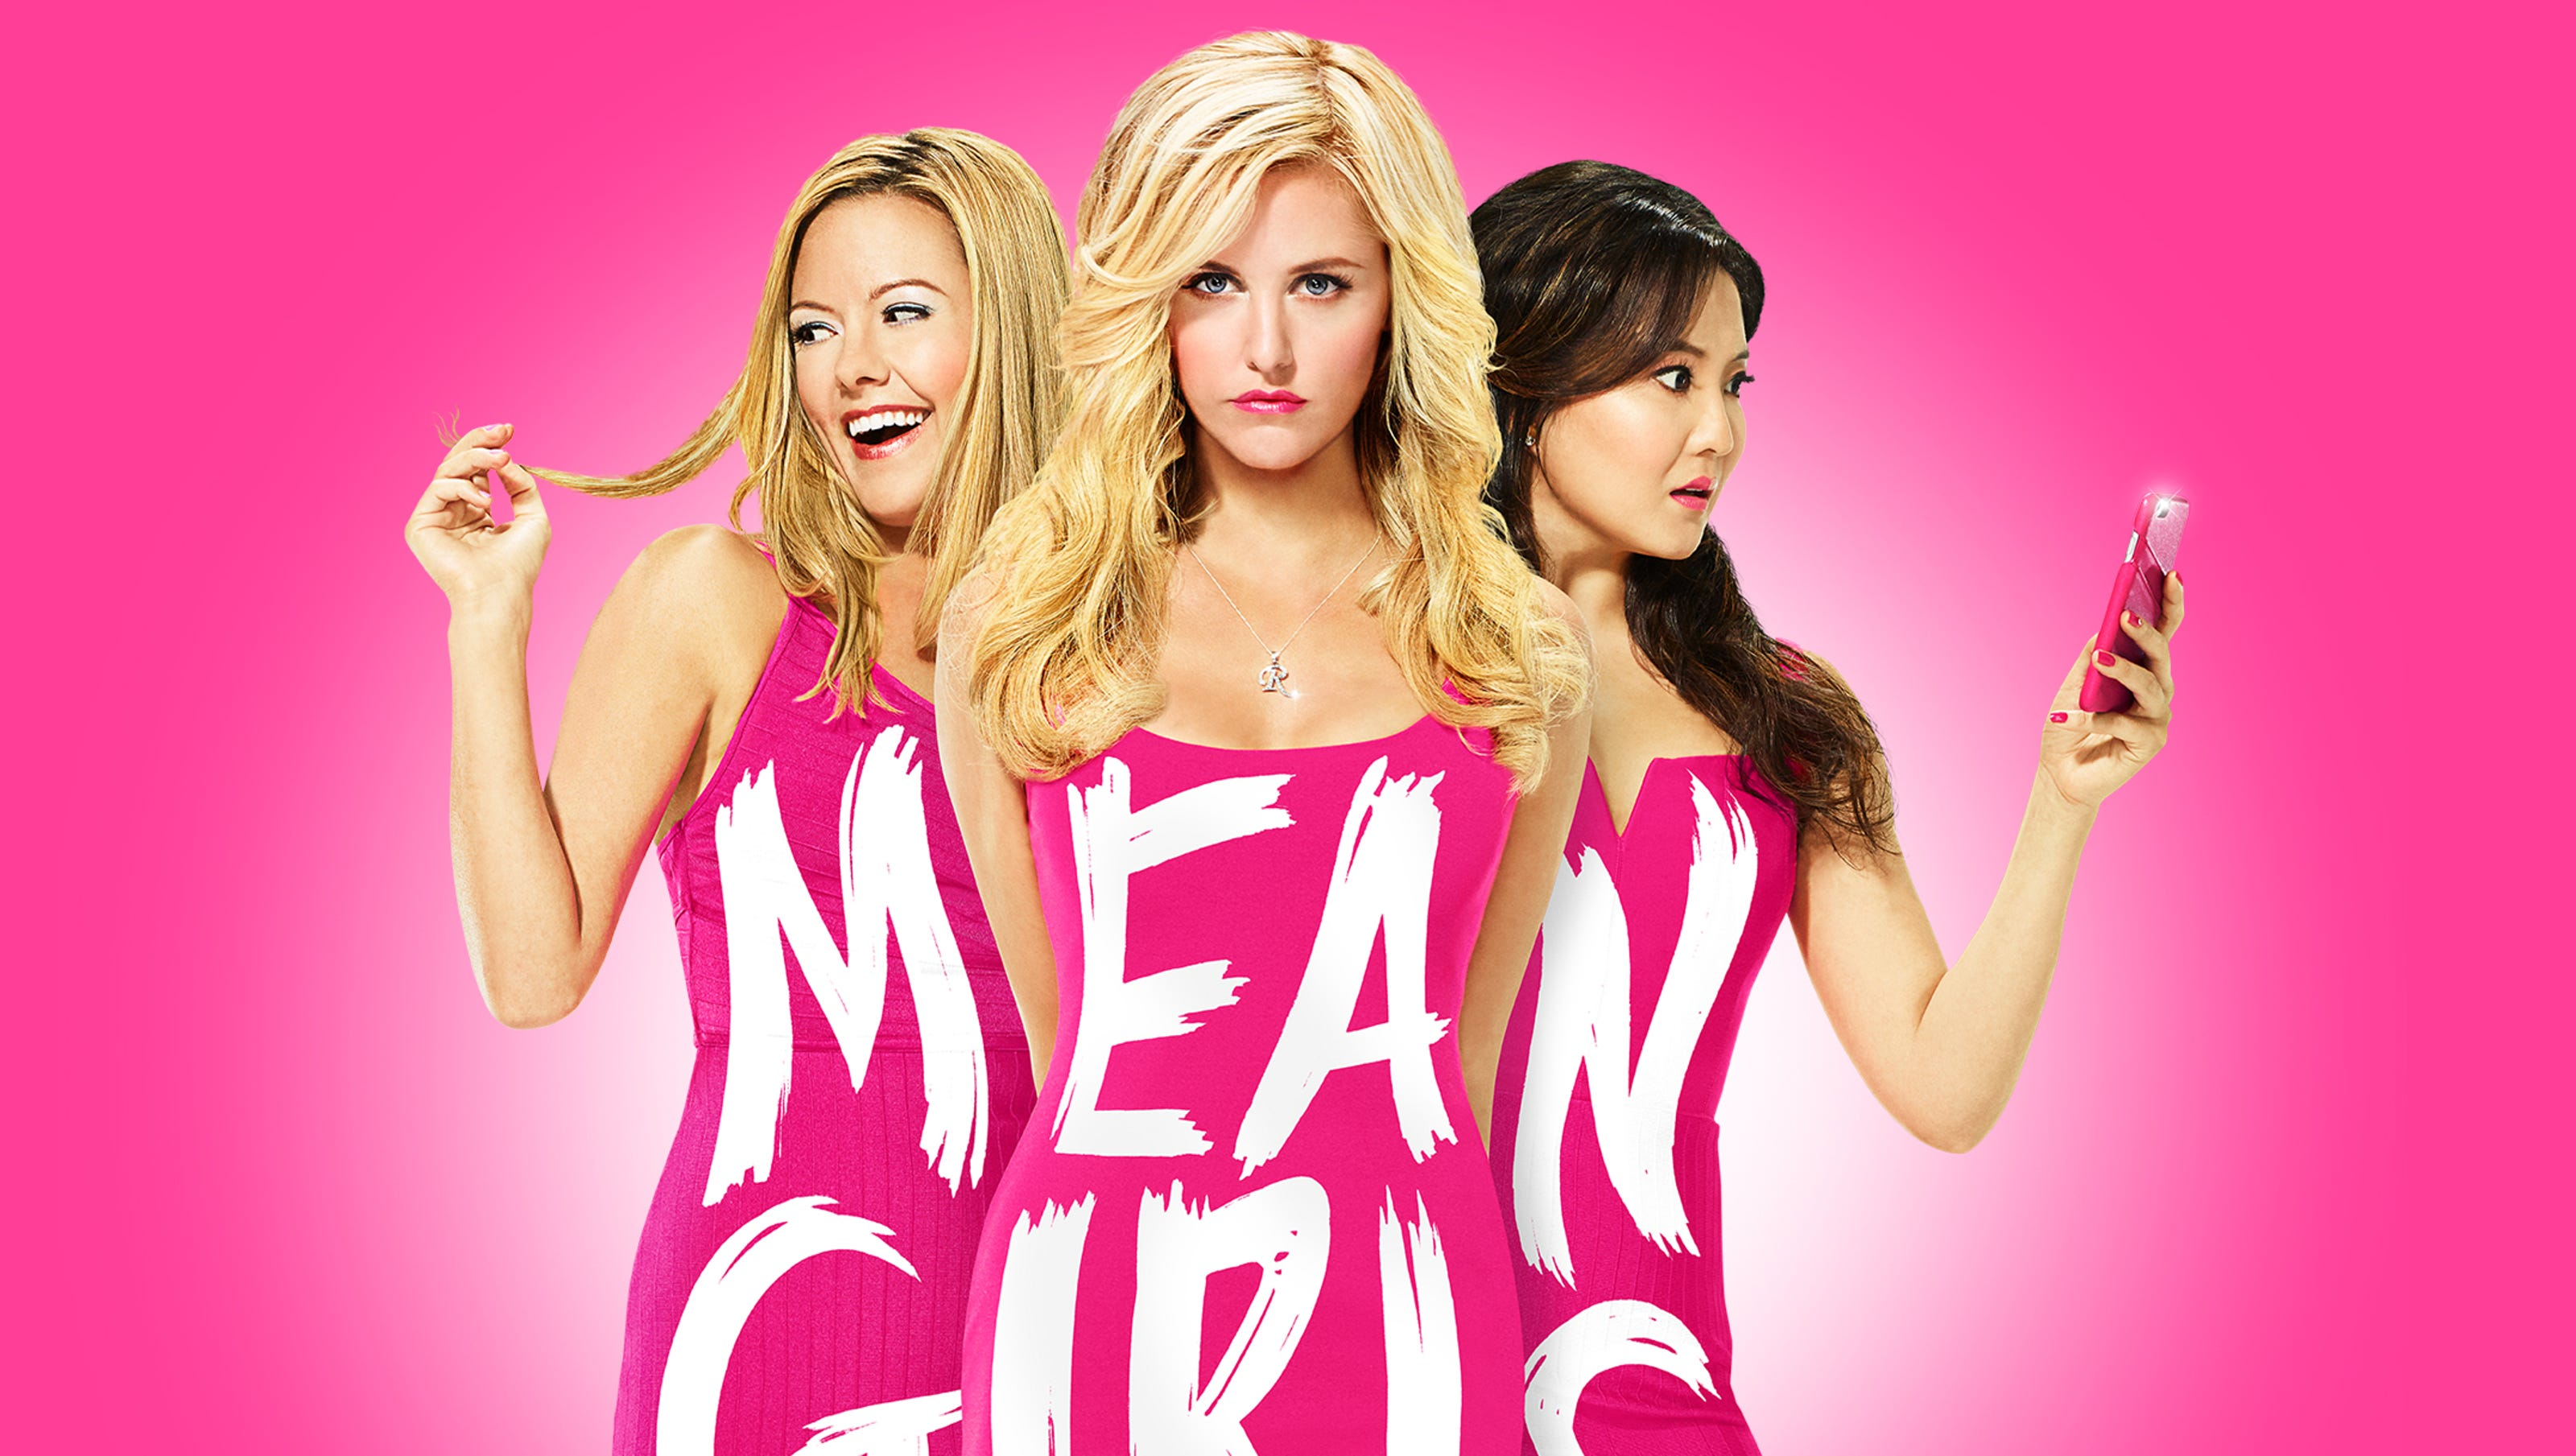 get in losers, 'mean girls: the musical' is here and its everything